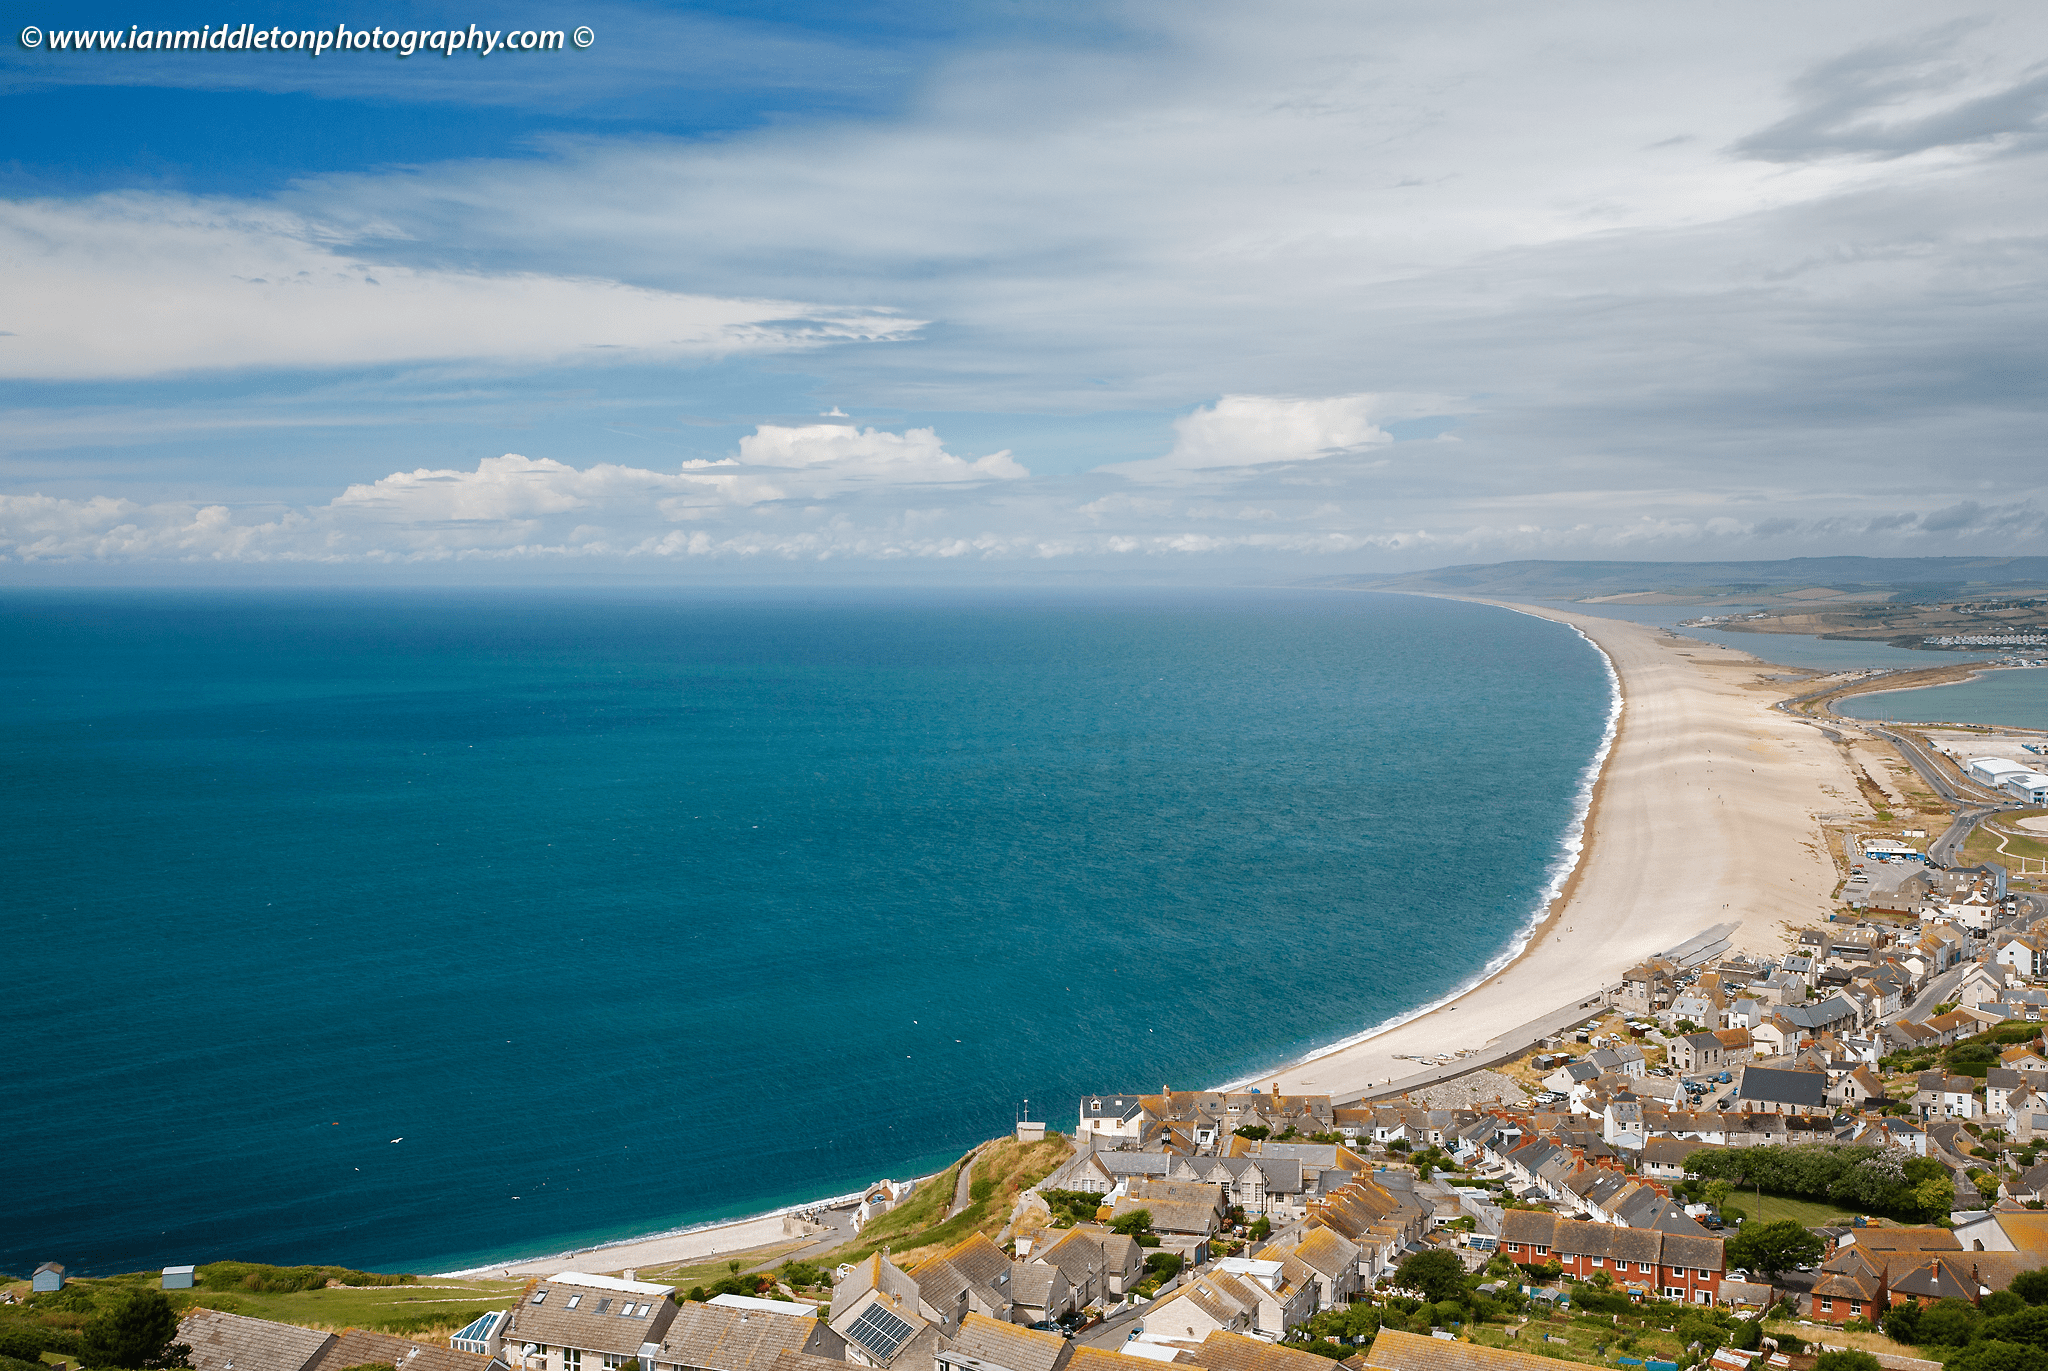 View across Chesil Beach from Portland Heights, Dorset, UK.